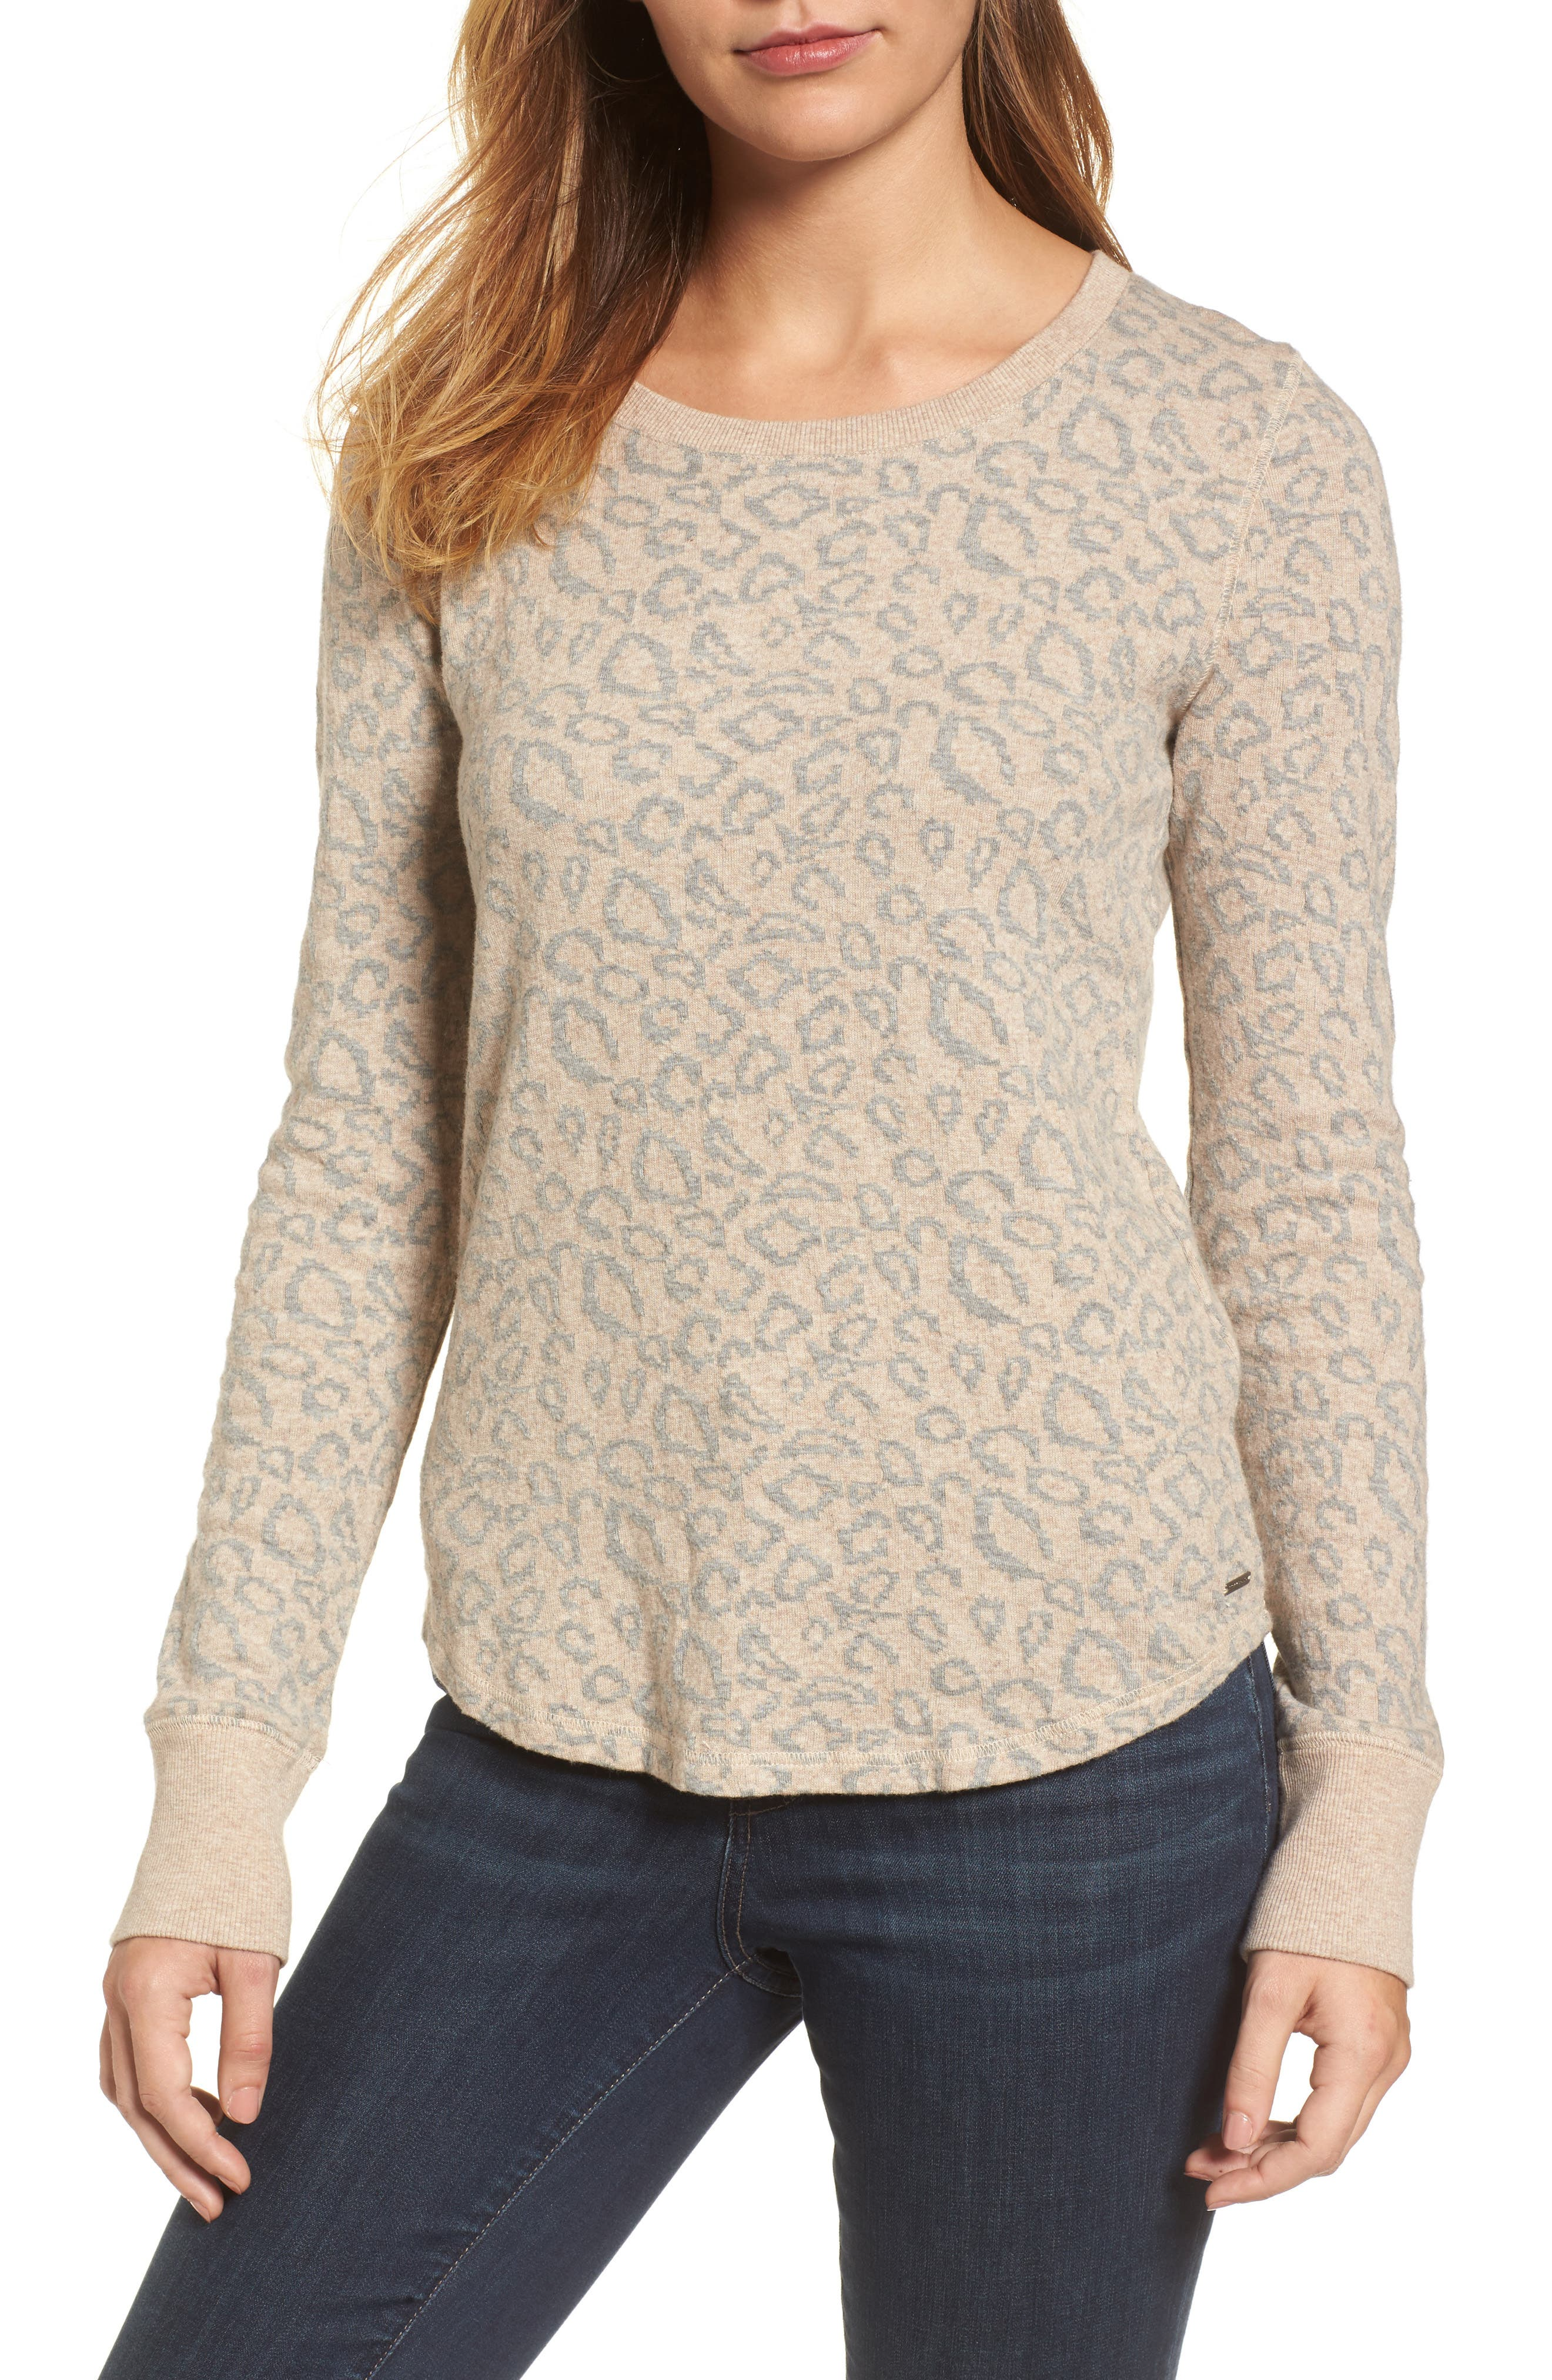 Alternate Image 1 Selected - Lucky Brand Cheetah Print Top